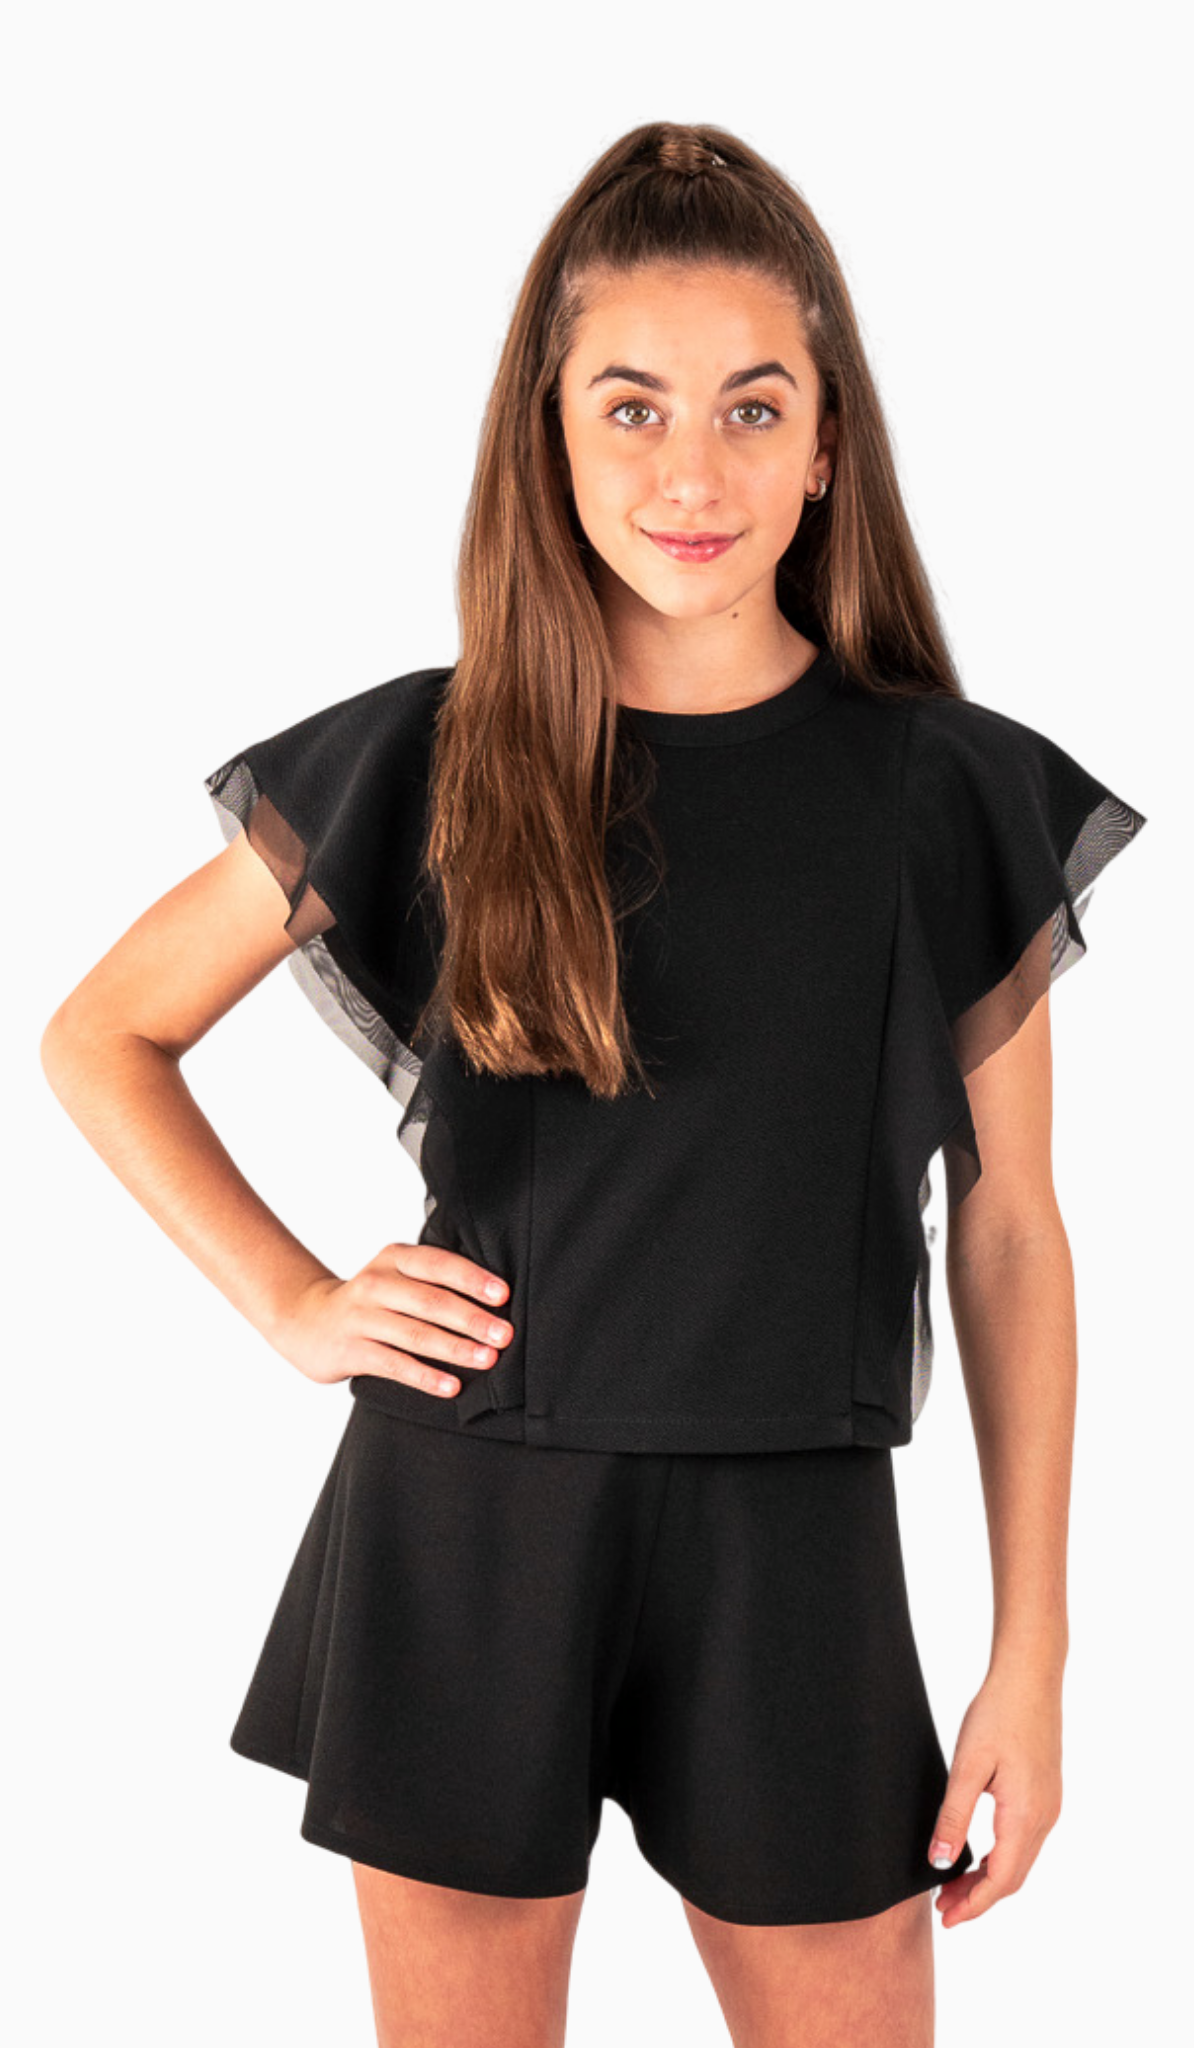 The Sally Miller Taylor Top - Black stretch textured lined knit flutter sleeve top with mesh trim